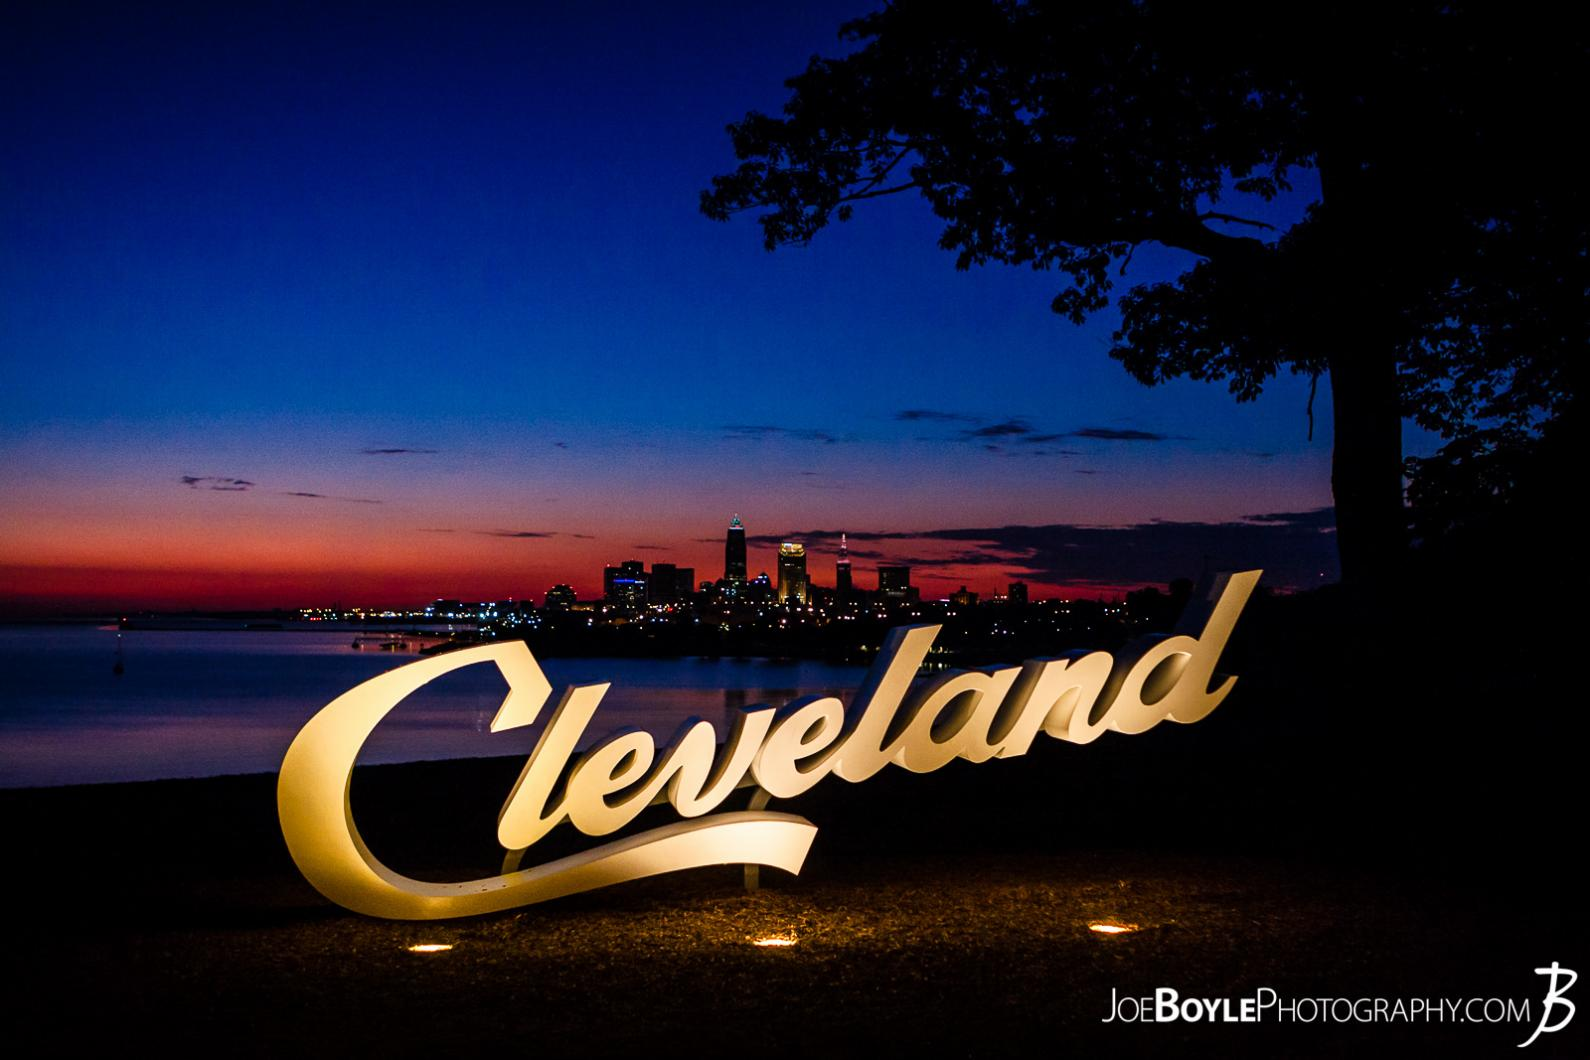 cleveland-sign-during-sunrise-at-edgewater-park